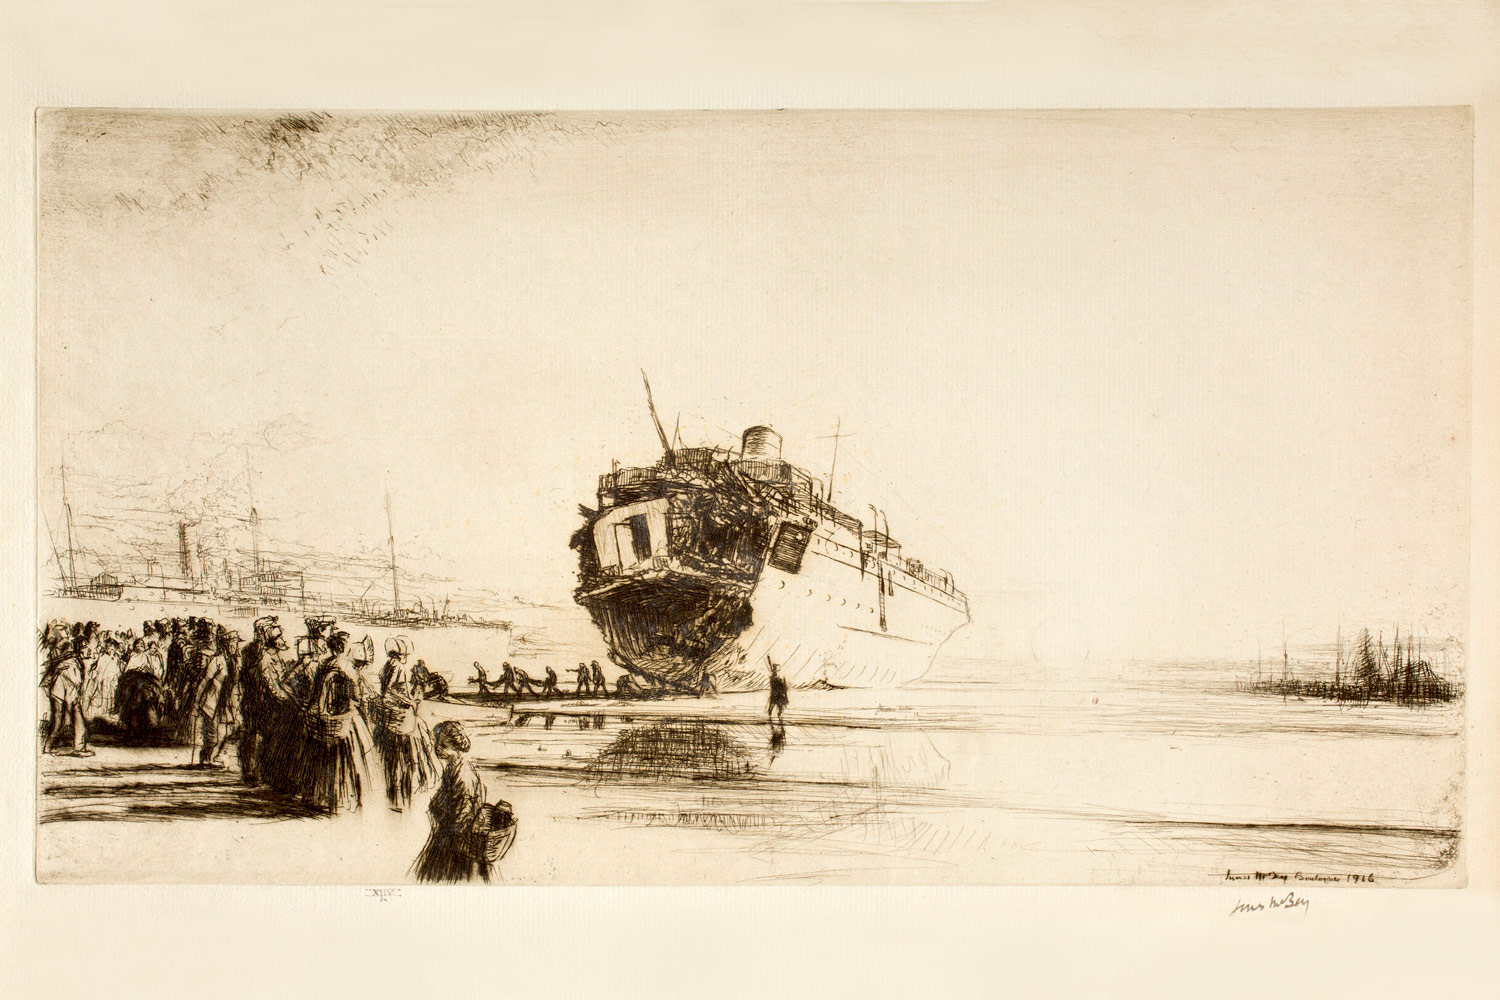 James McBey: The Sussex, 1916. Etching, promised gift of Frank Raysor. © Virginia Museum of Fine Arts